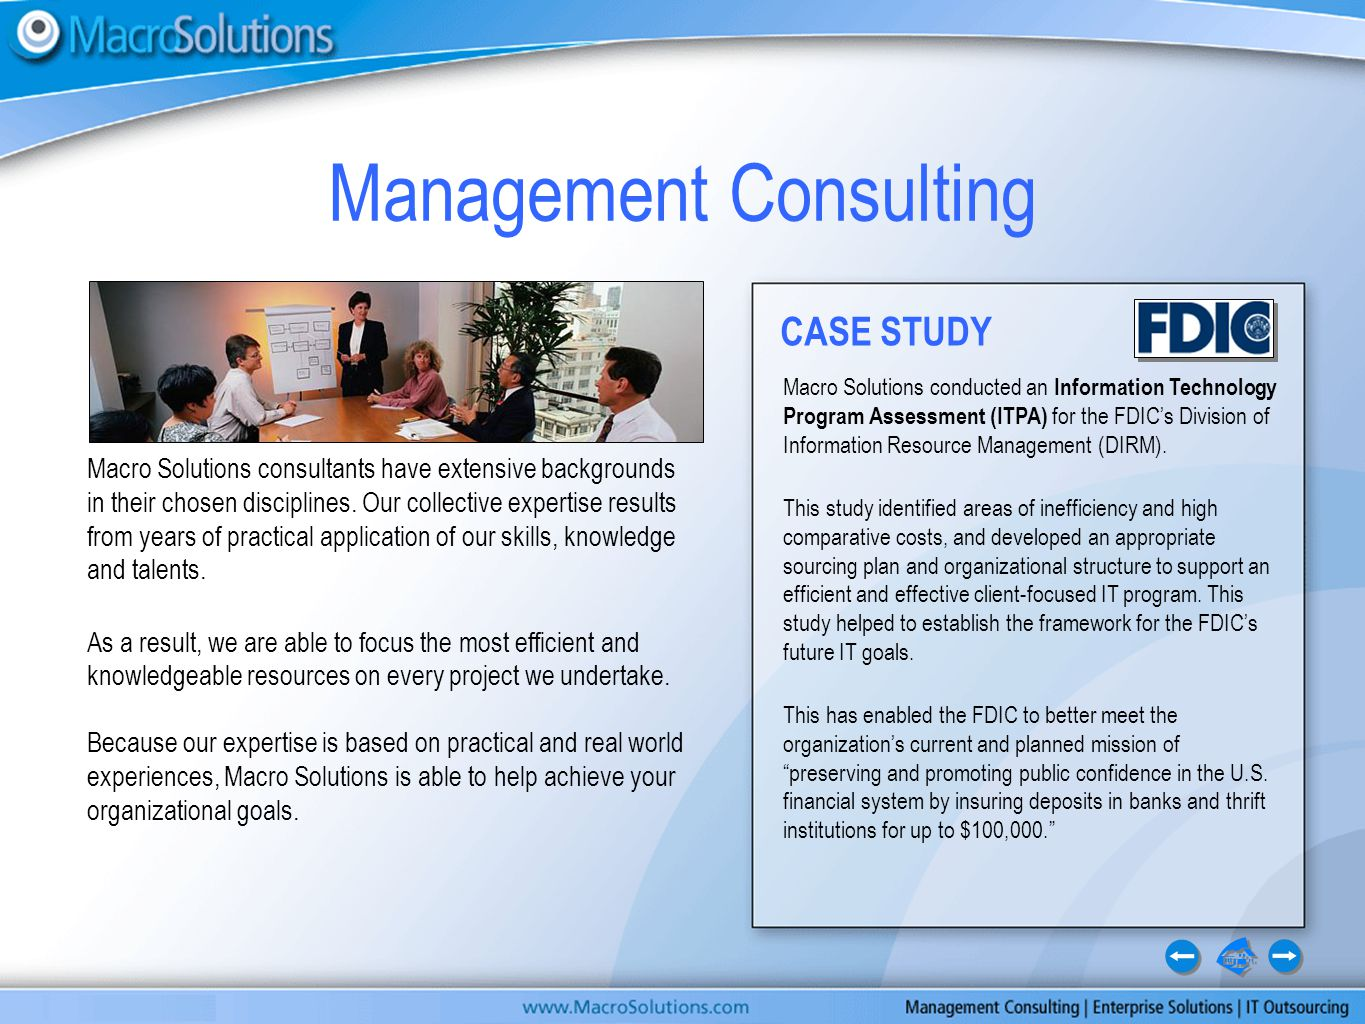 Macro Solutions consultants have extensive backgrounds in their chosen disciplines.